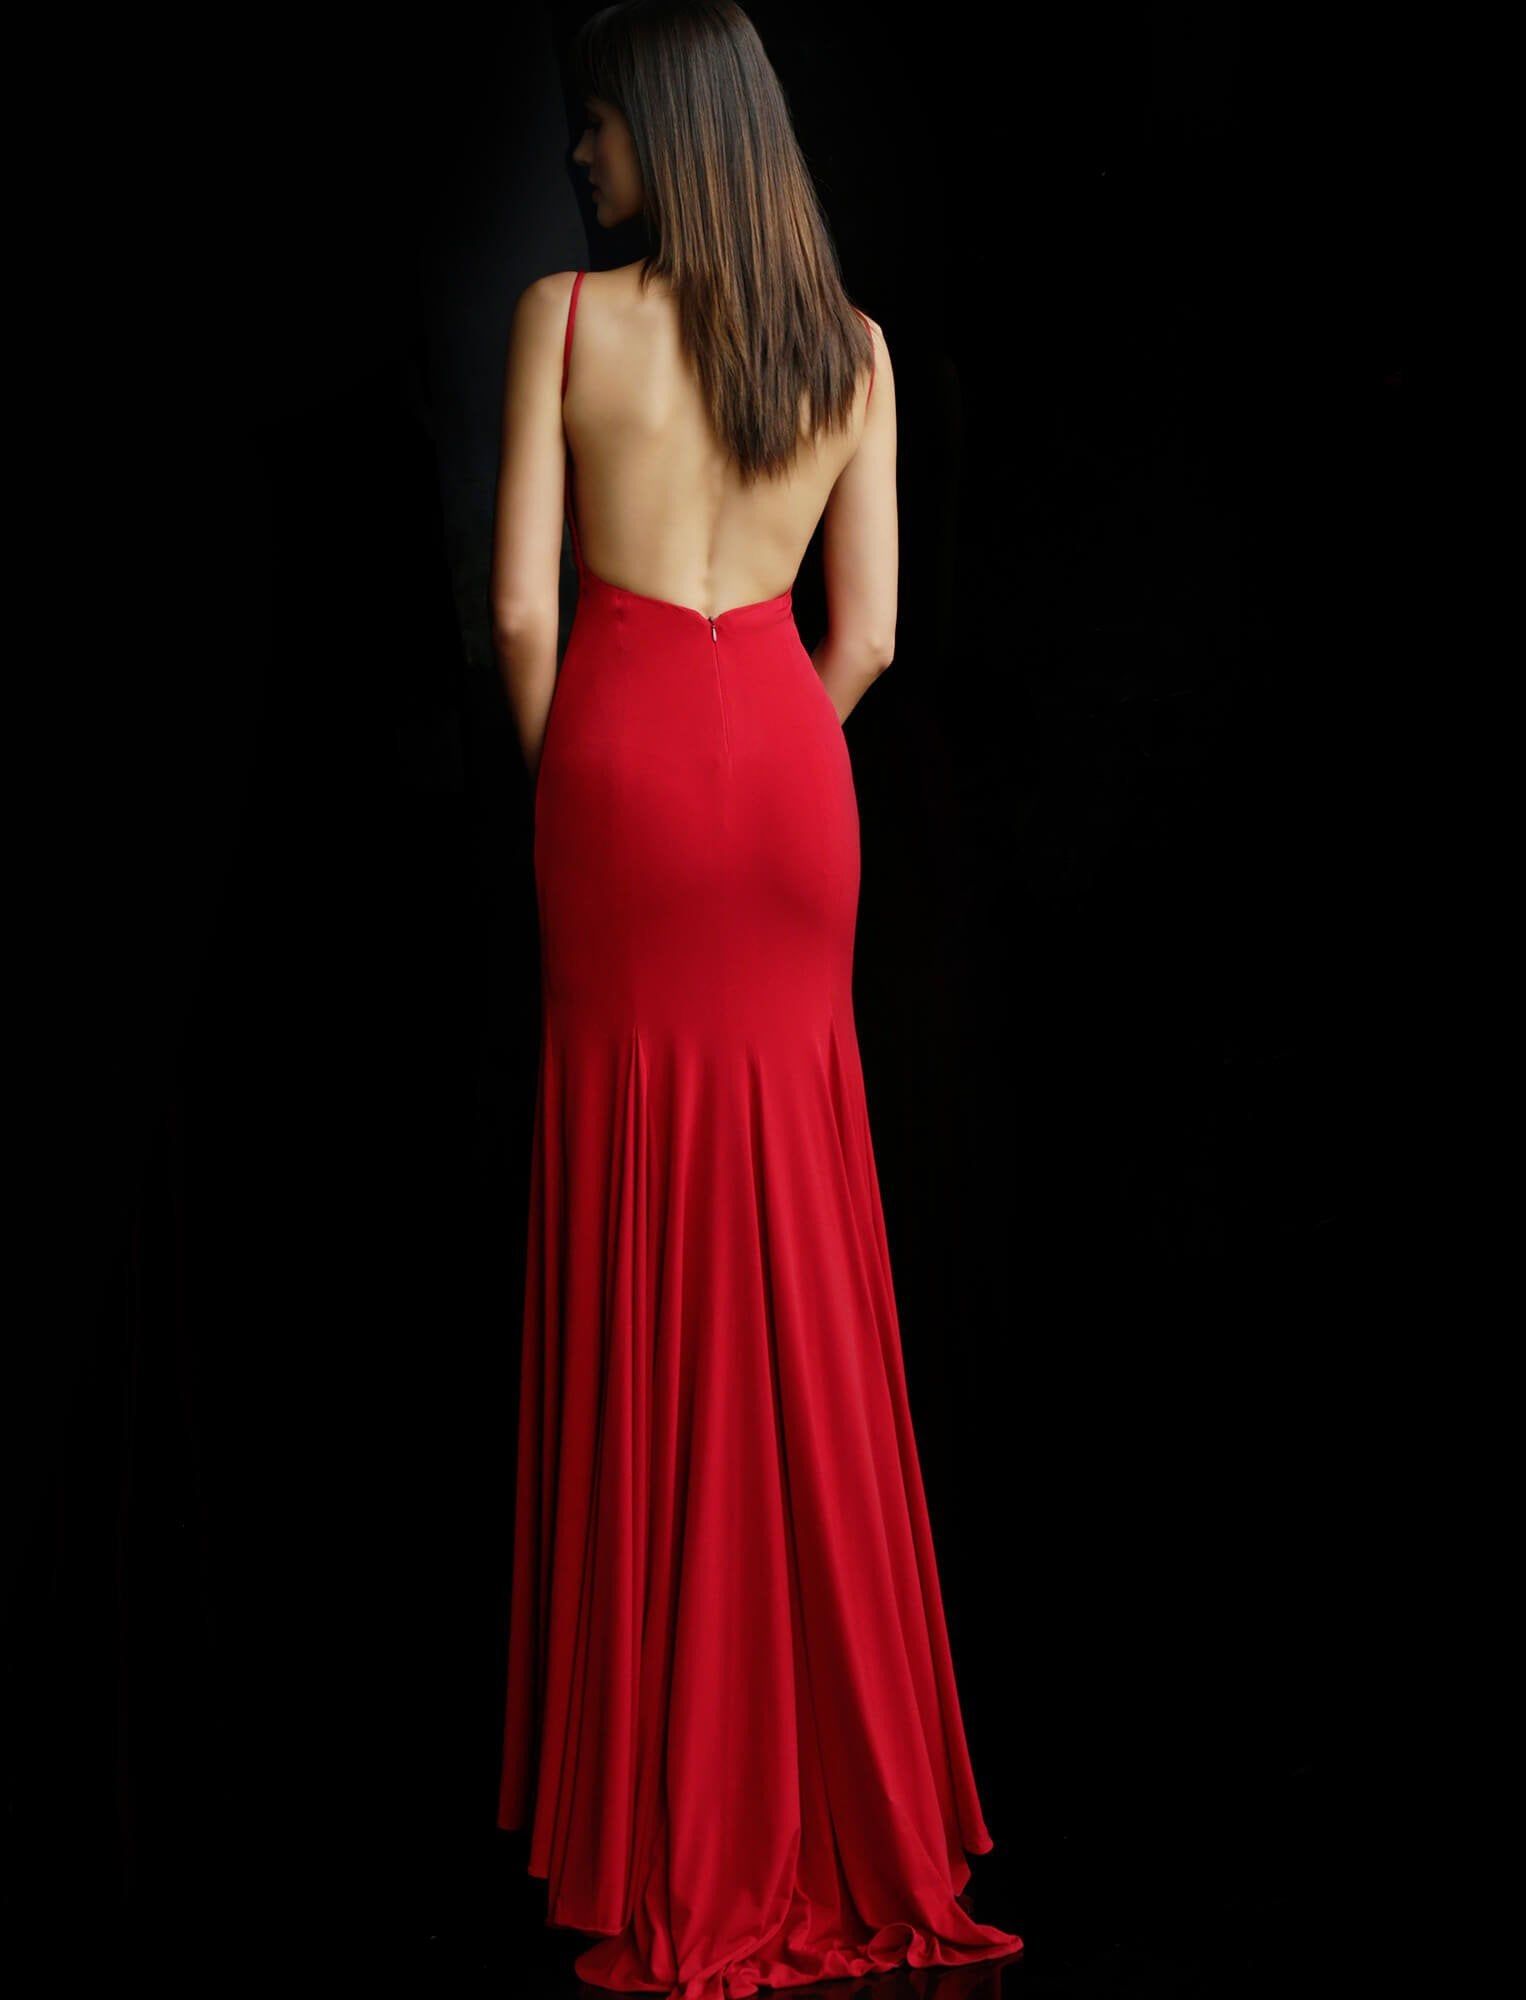 Jovani - Sleeveless Backless Jersey Trumpet Dress 63564  In Red